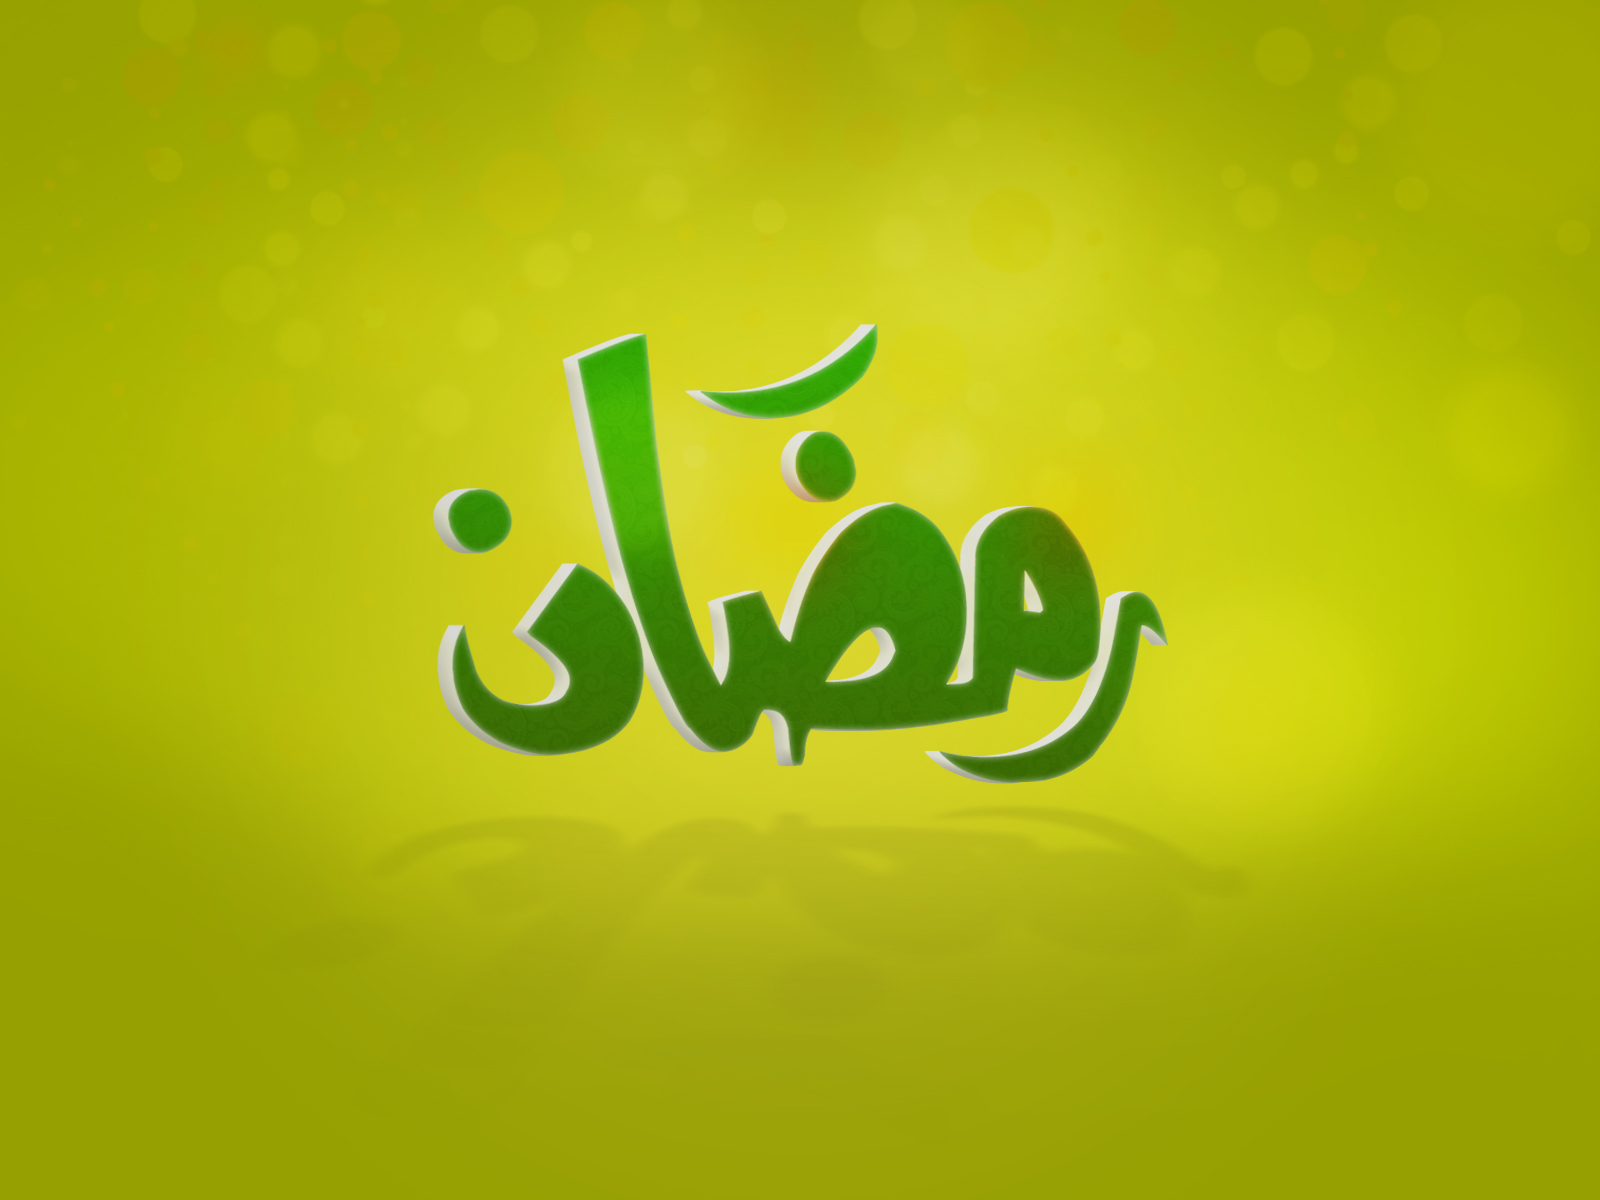 http://4.bp.blogspot.com/-OTFFG55nUWY/UAkV3ucxoEI/AAAAAAAAA7s/Qxsh8guRi34/s1600/Ramadhan+Wallpaper+And+Background+2012+1433H.jpg